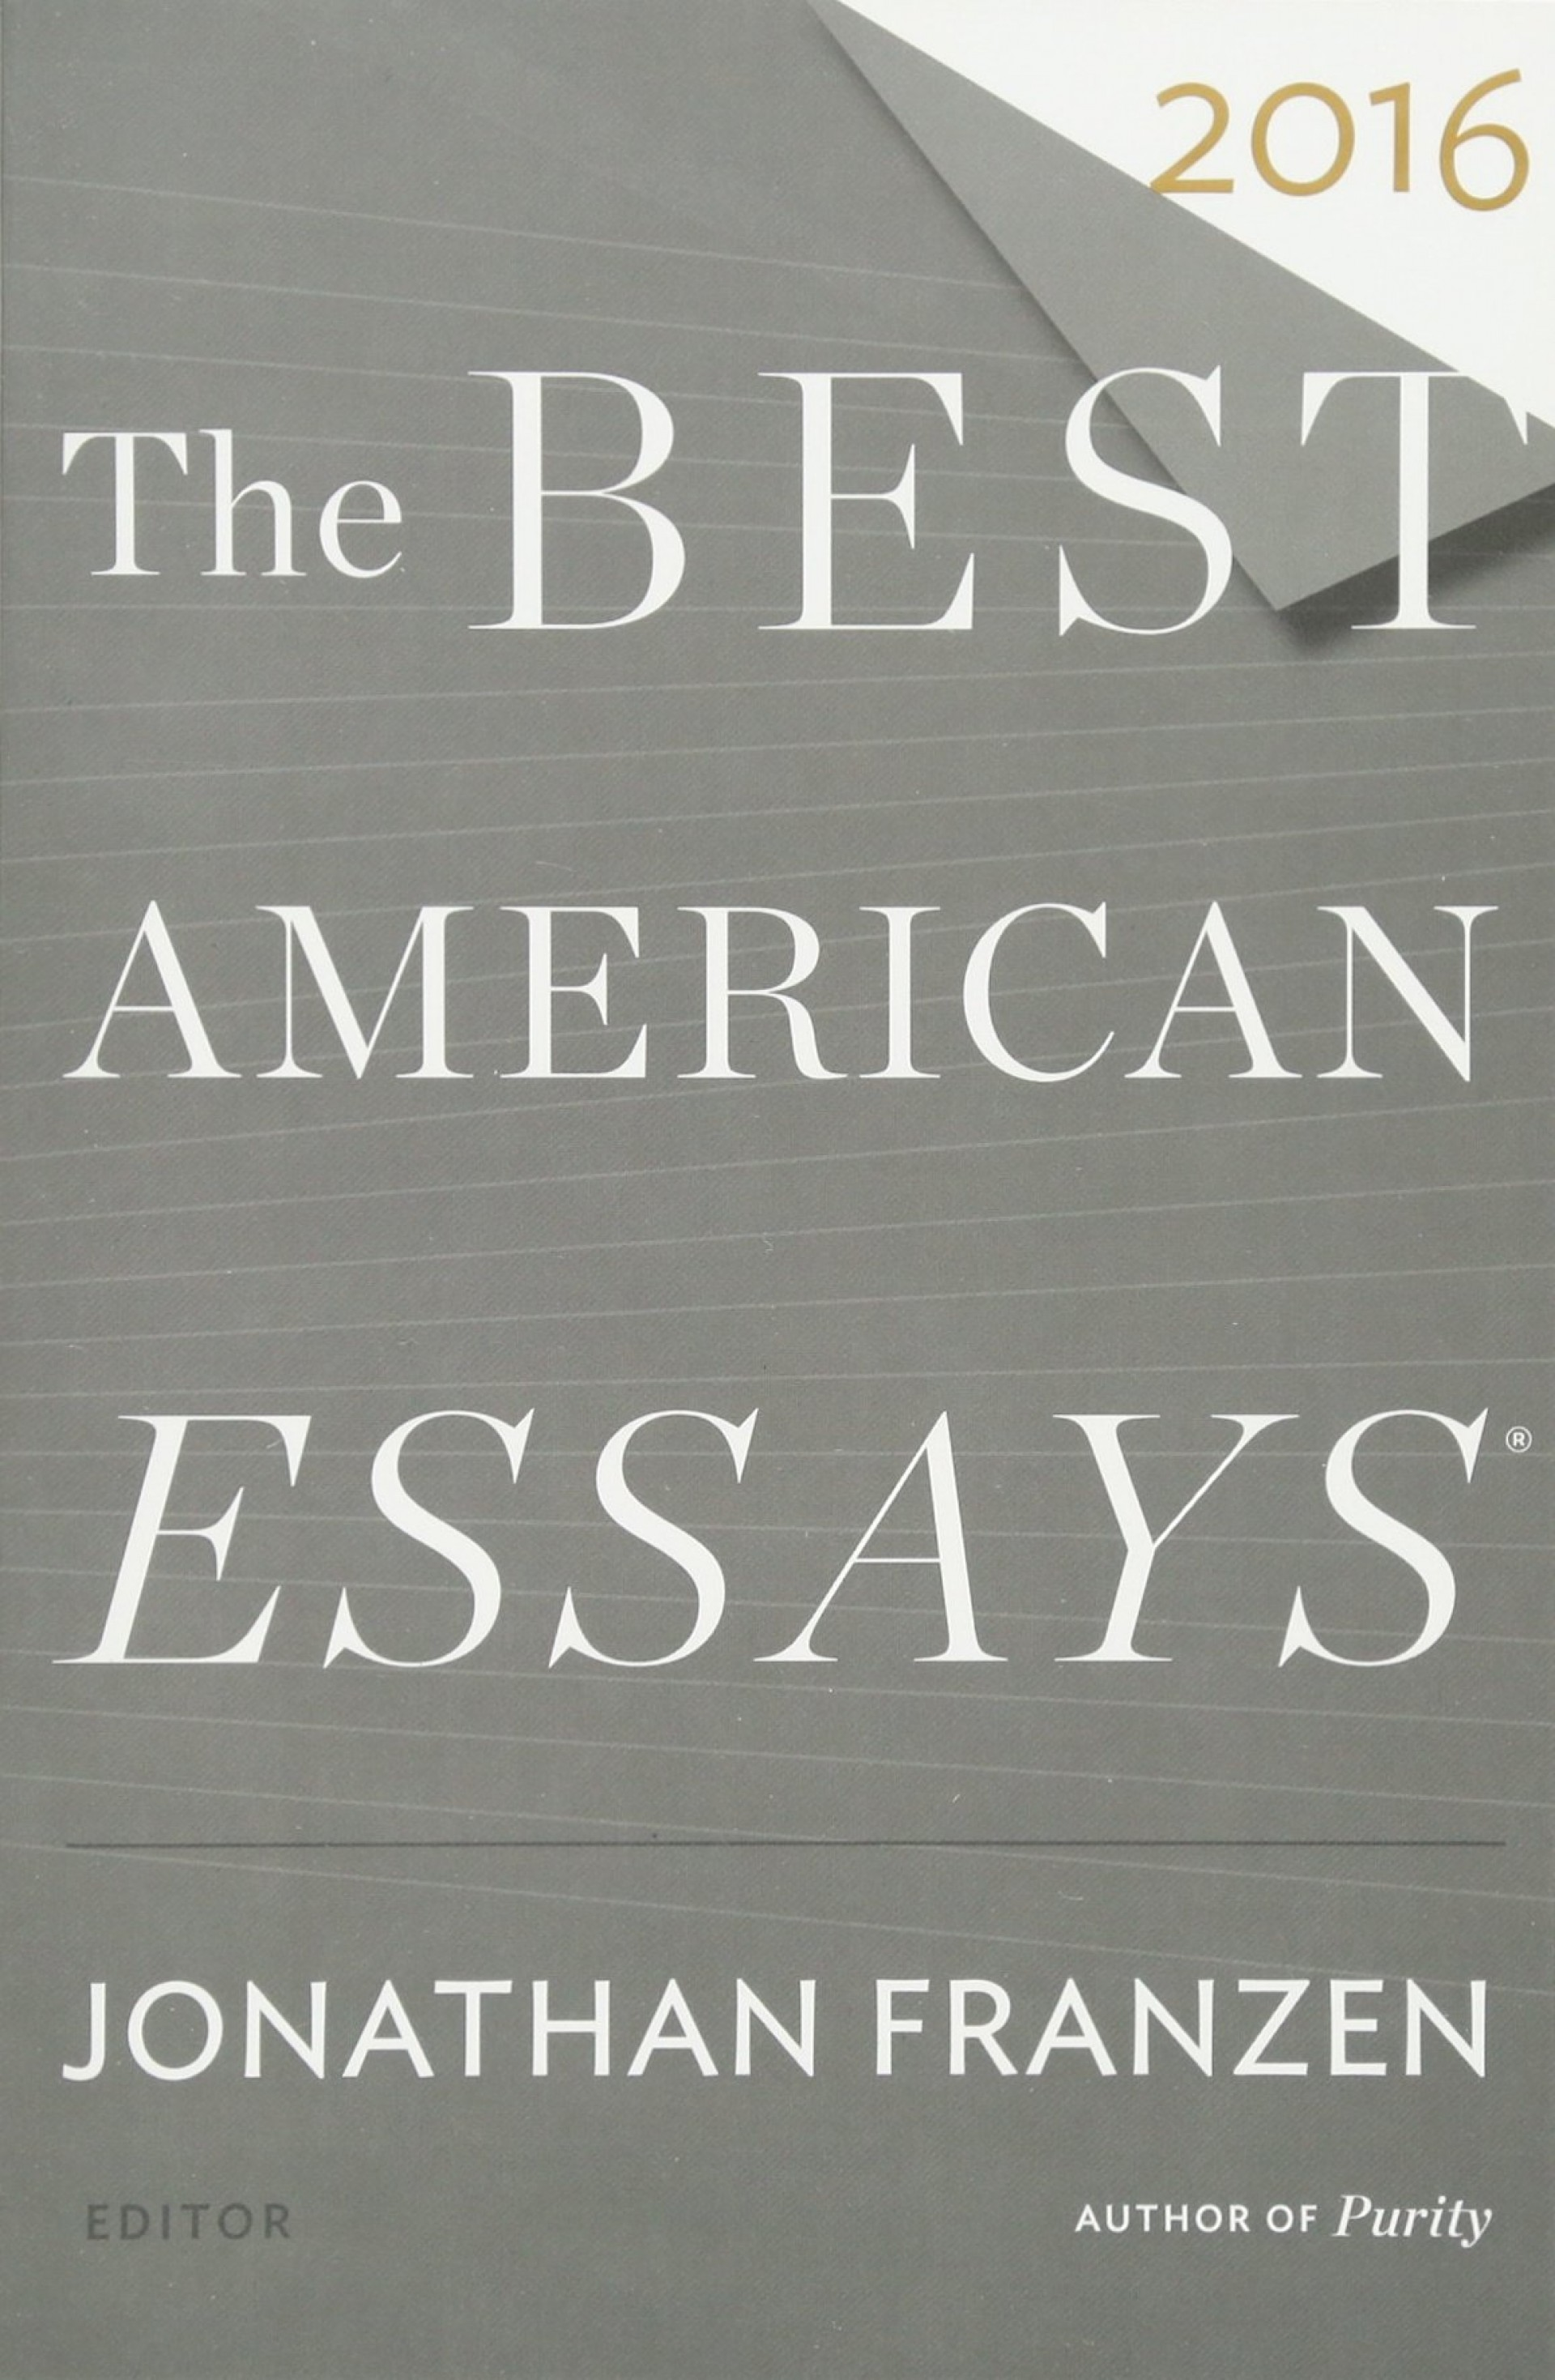 005 The Best American Essays Essay Example Wonderful Of Century Table Contents 2013 Pdf Download 1920